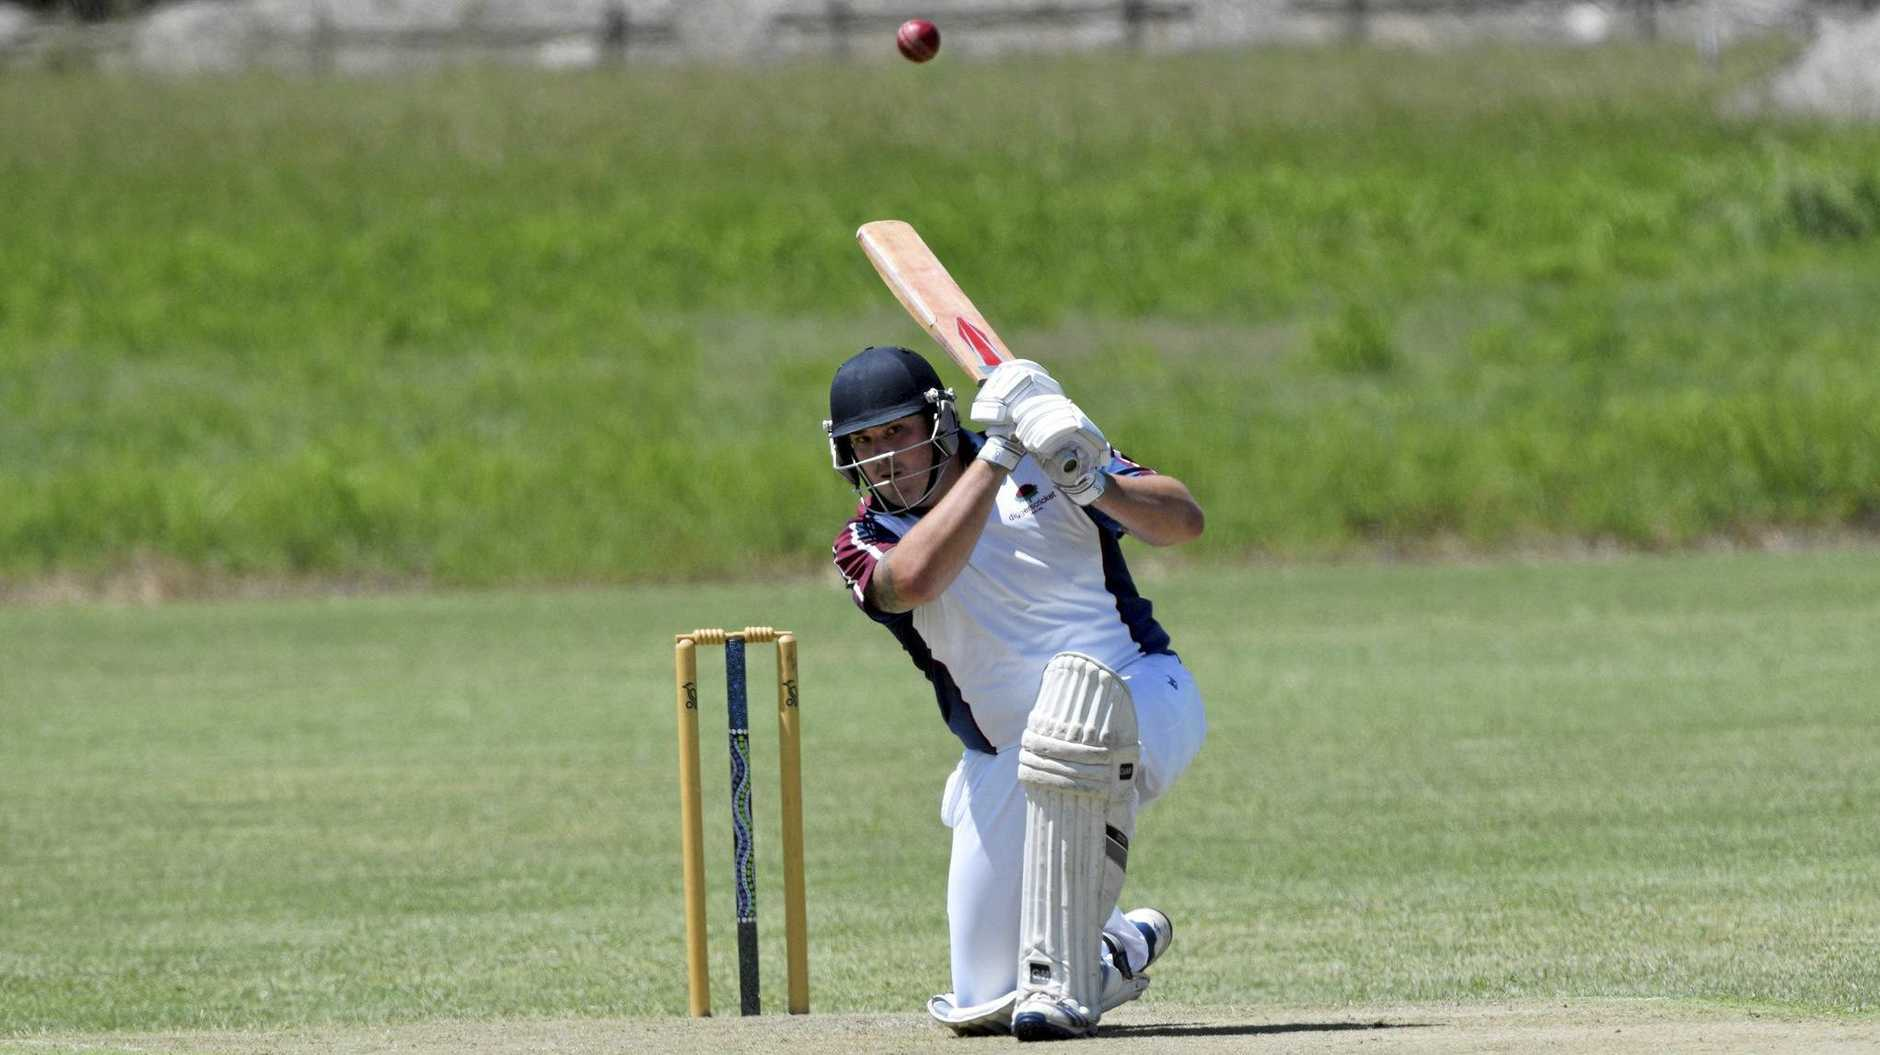 LEADING MAN: James Bellamy has been Diggers' leading batsman this season and will be seeking a big score this weekend against Star Hotel.